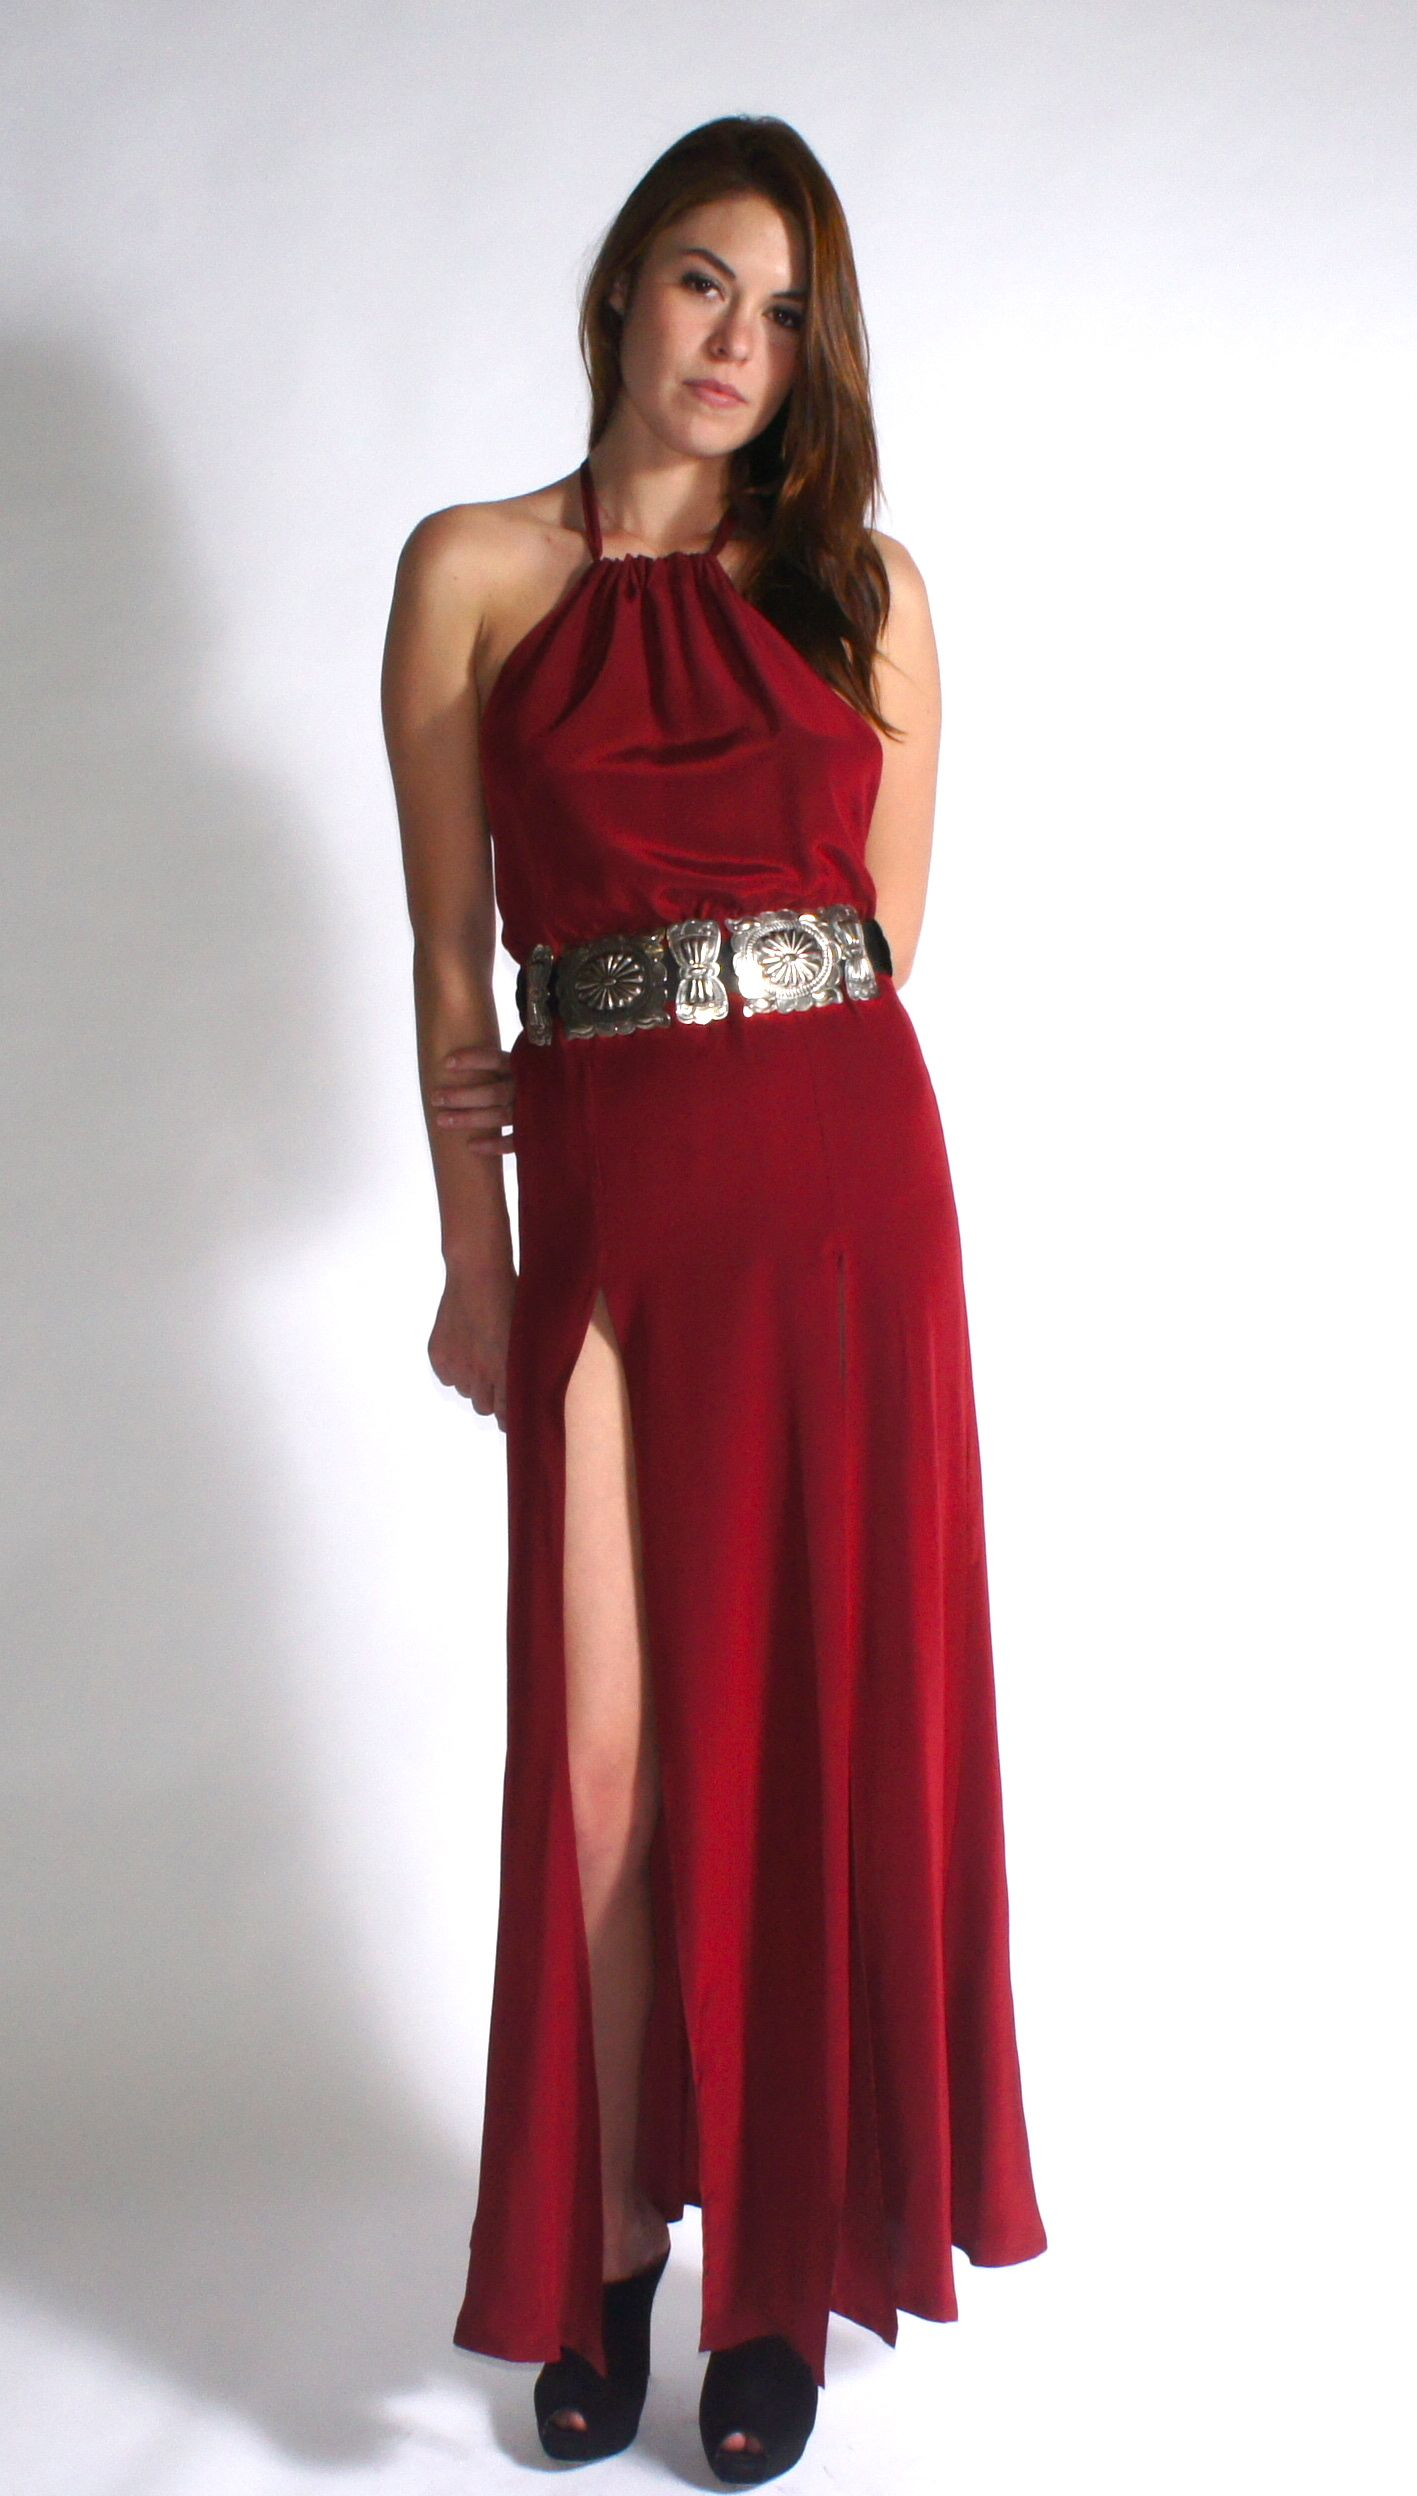 Stone Cold Fox- Red Onyx Gown www.thestonecoldfox.com | STONE COLD ...